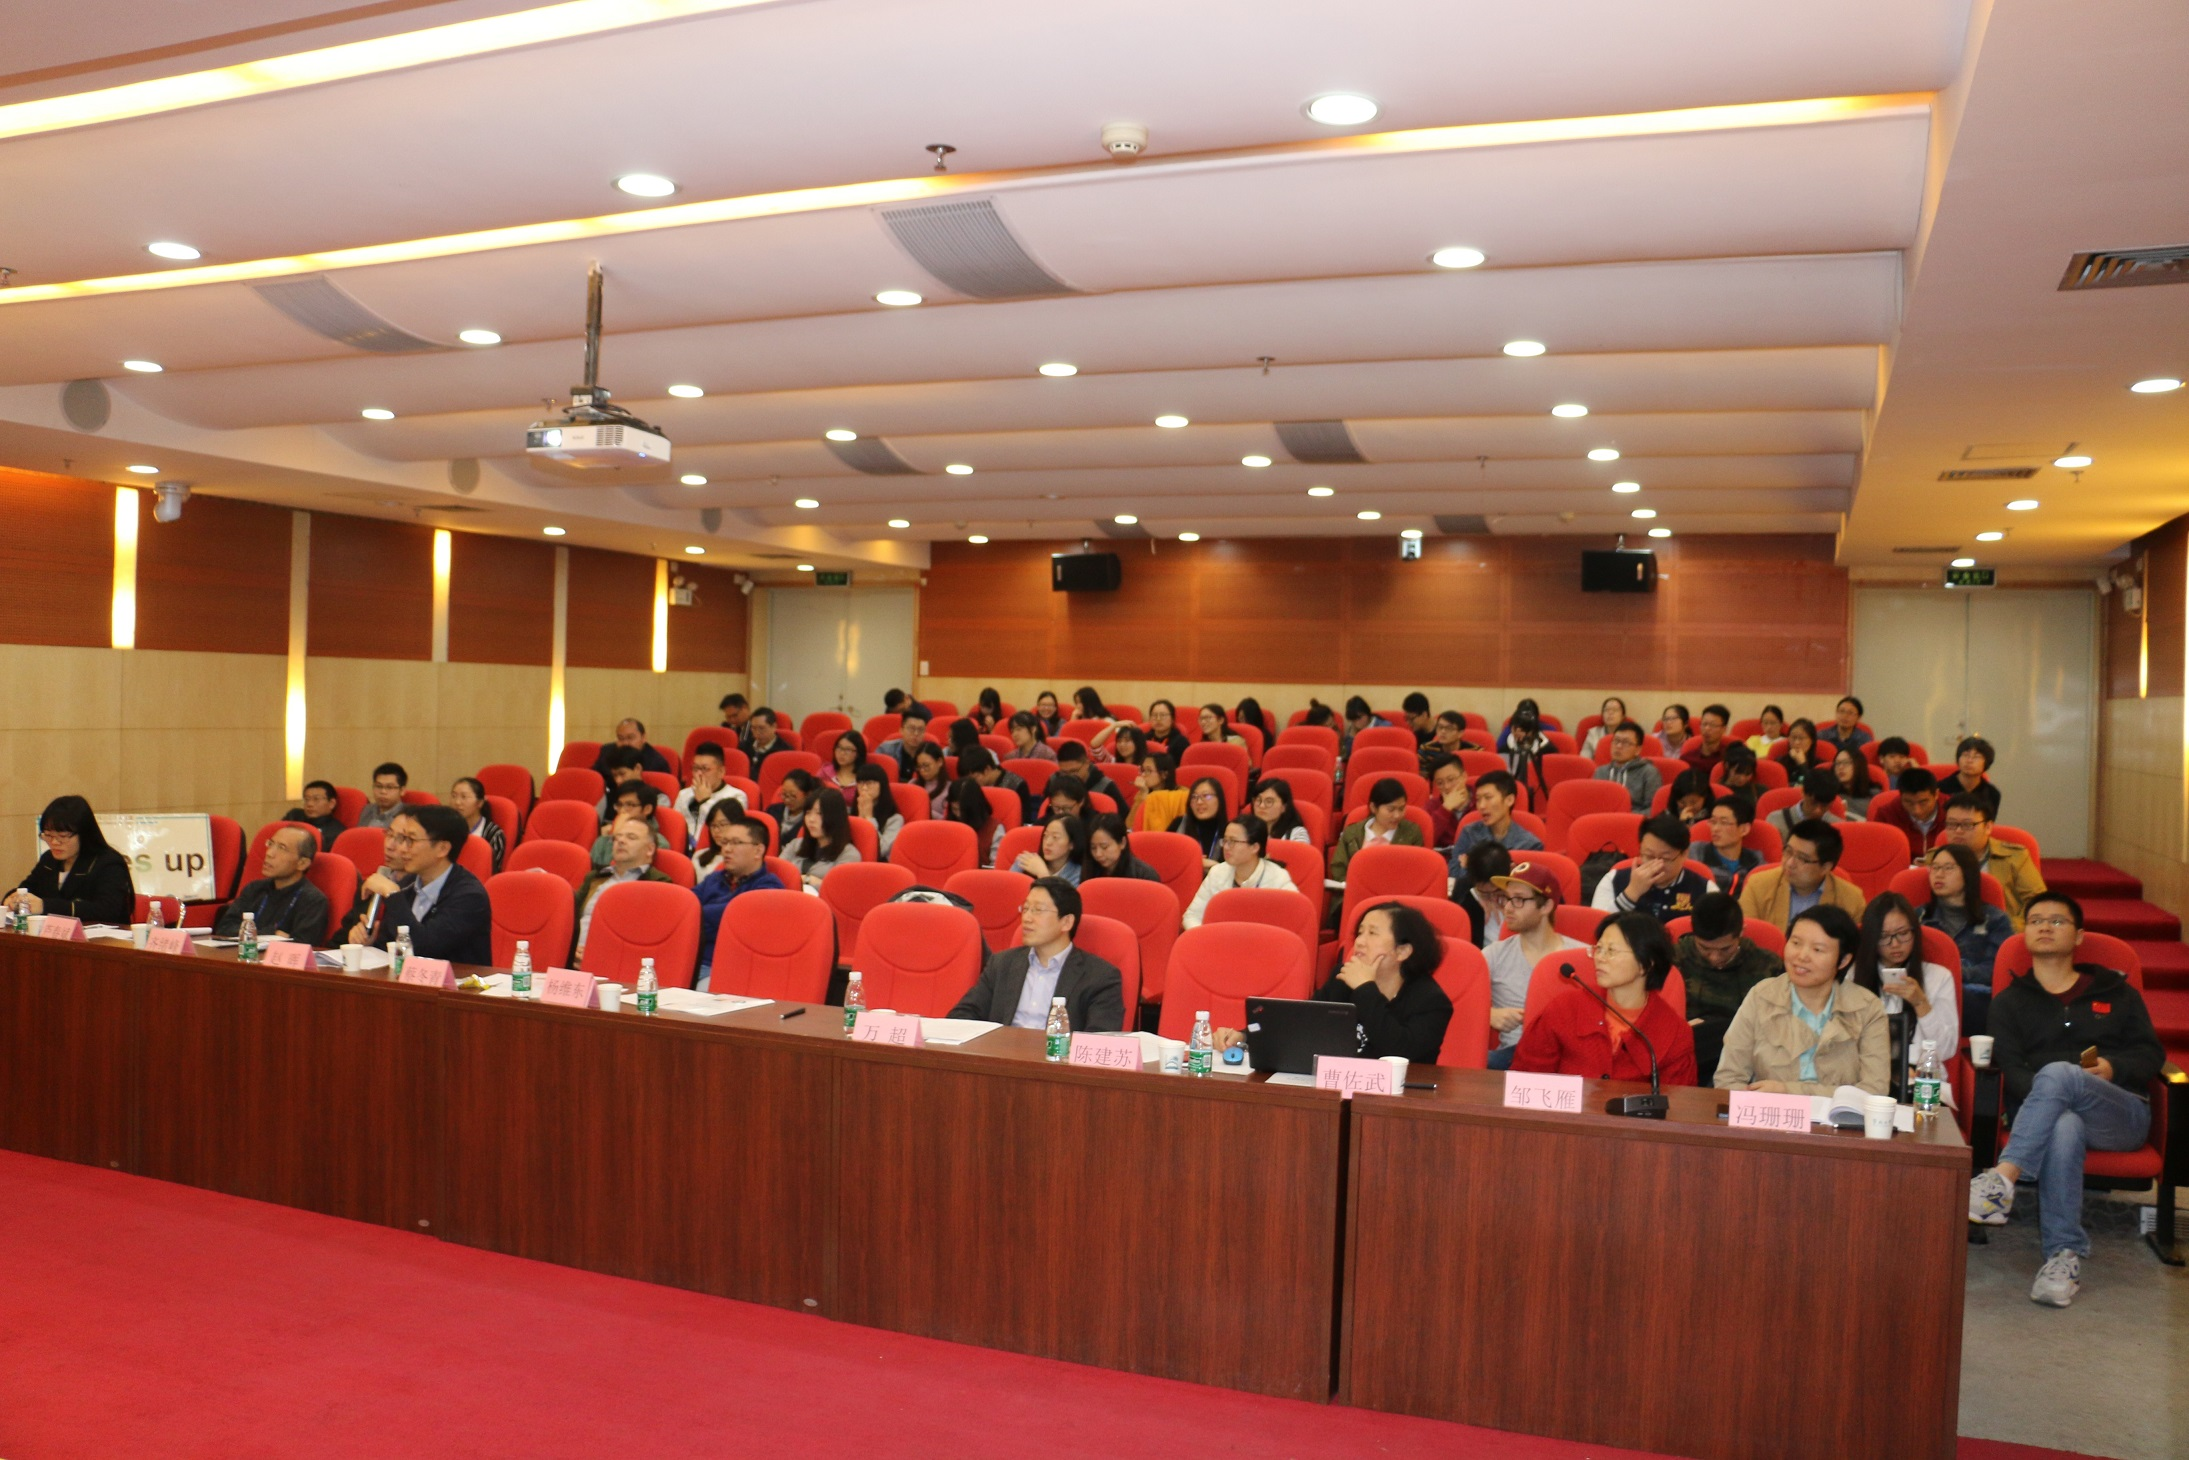 Snapshot taken during the Symposium